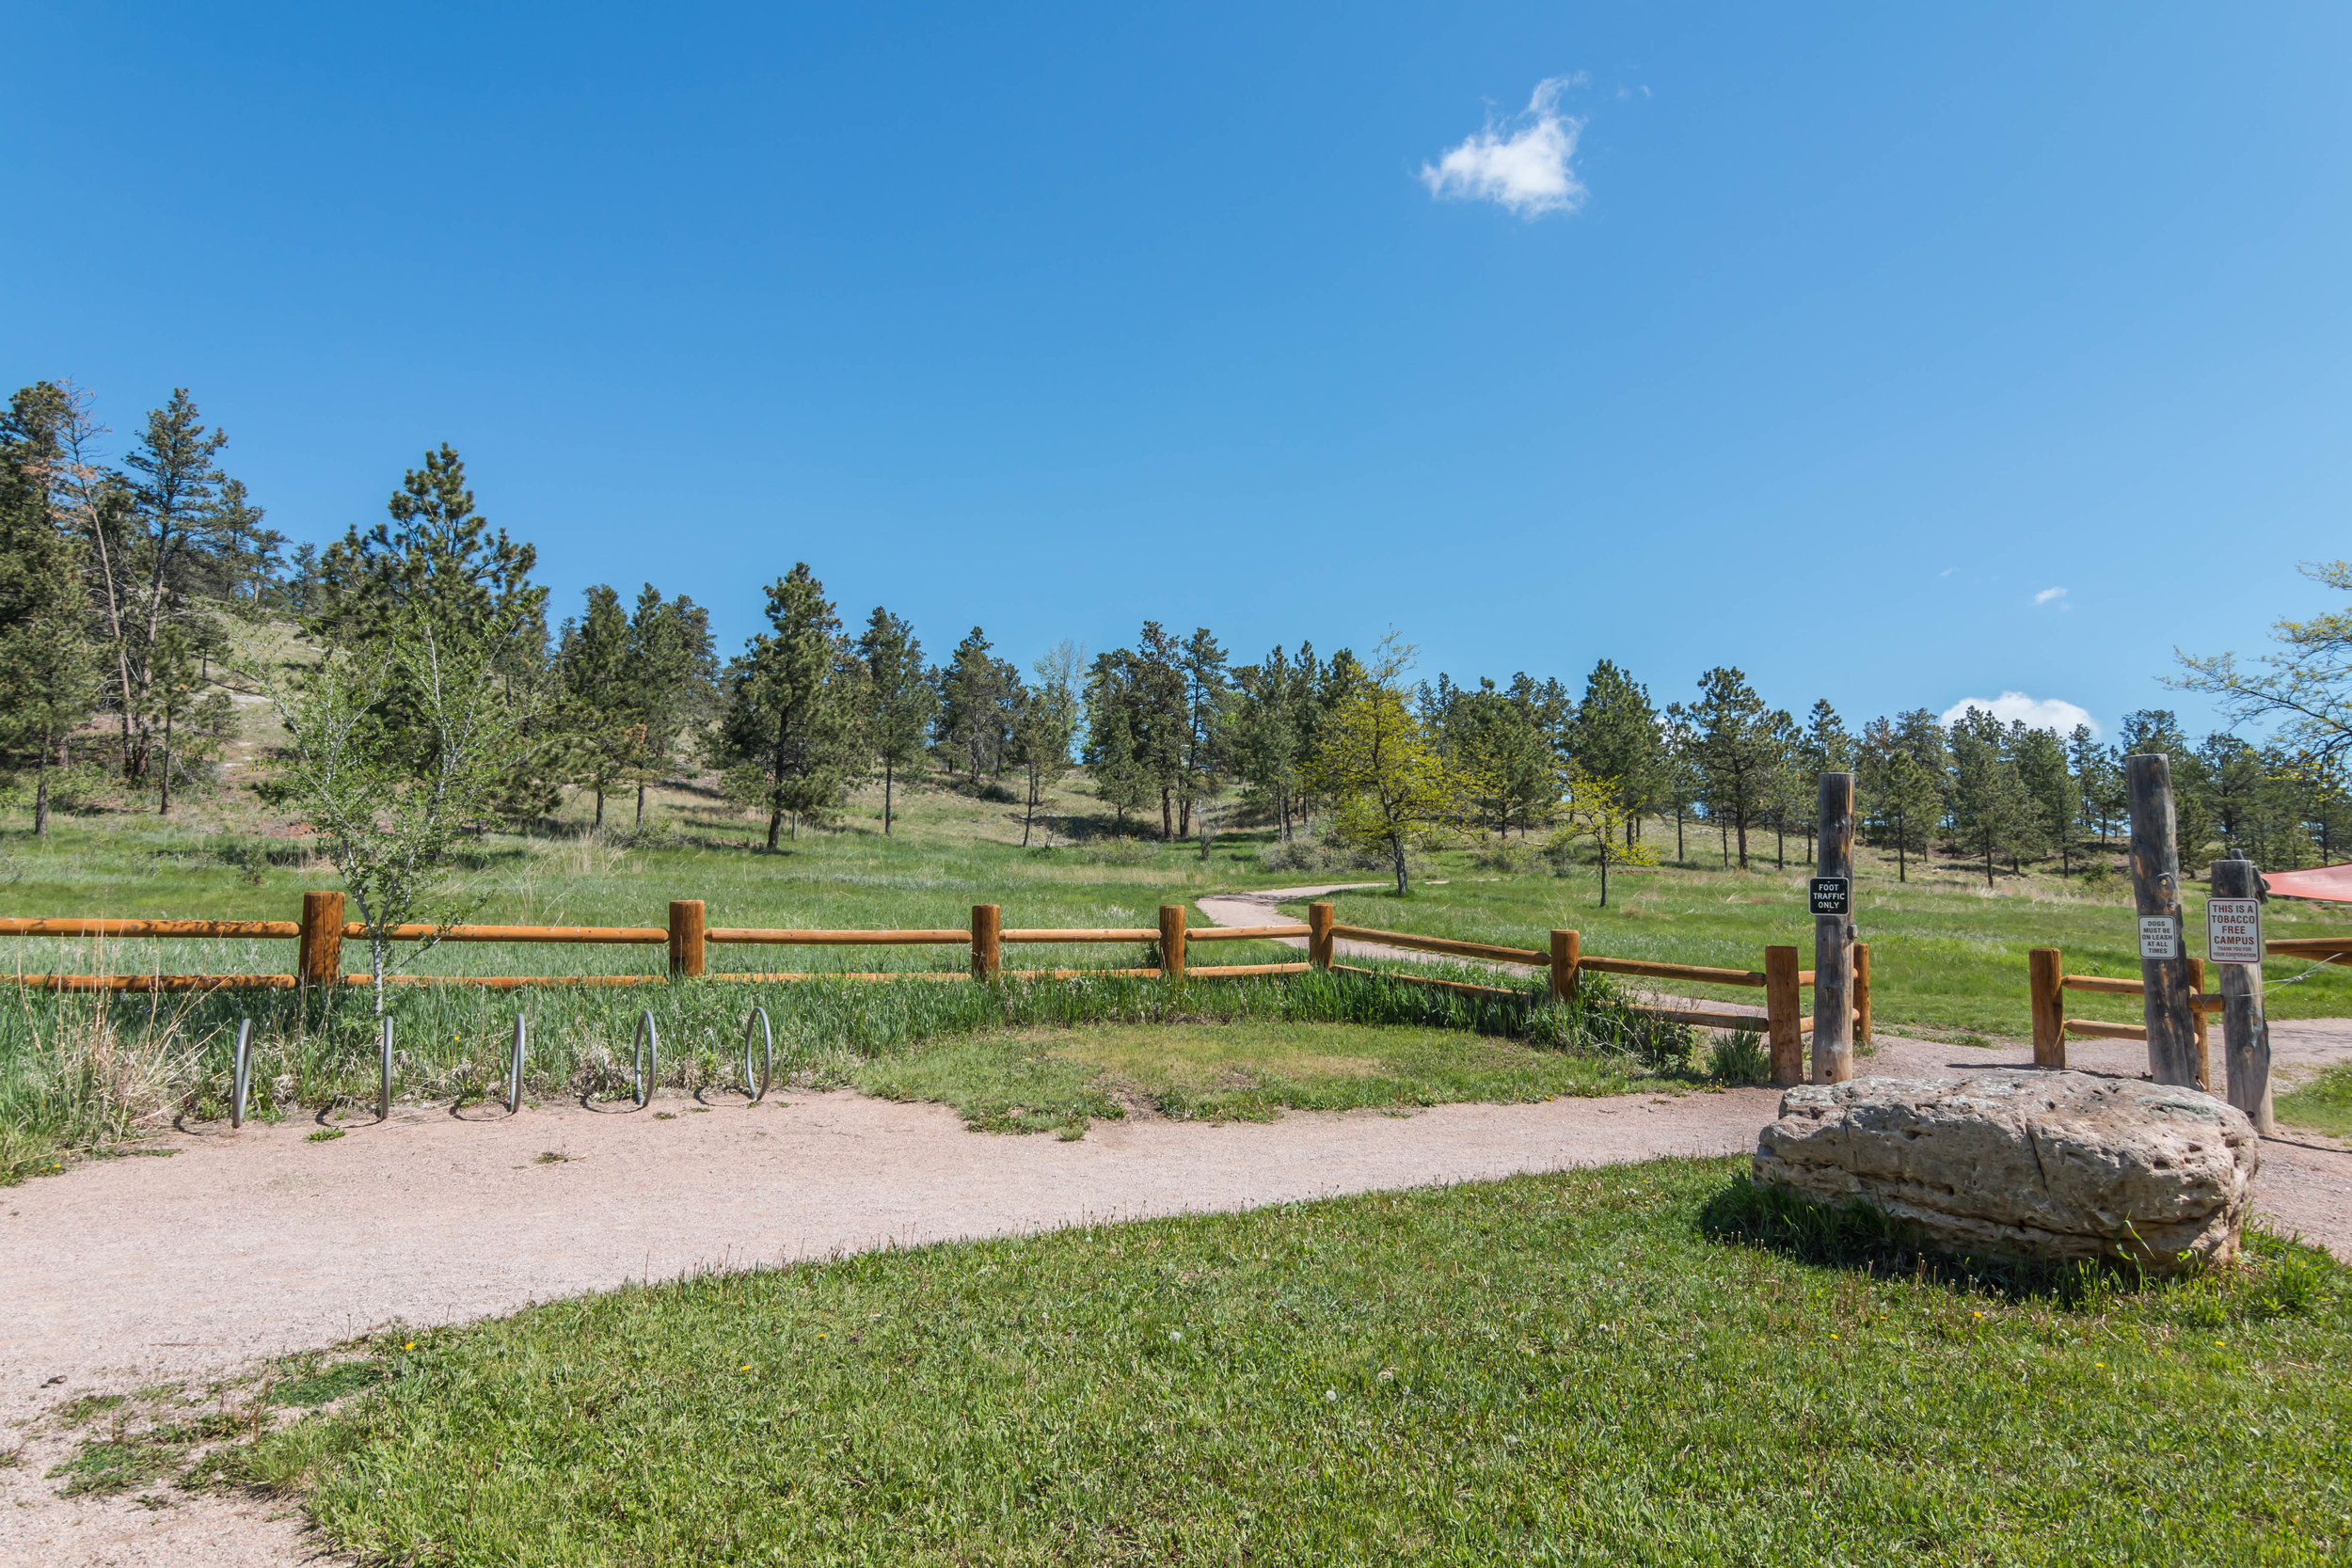 10-Within Walking Distance of Wilderness Park _ Mulitple Trails Throughout Rapid City.jpg